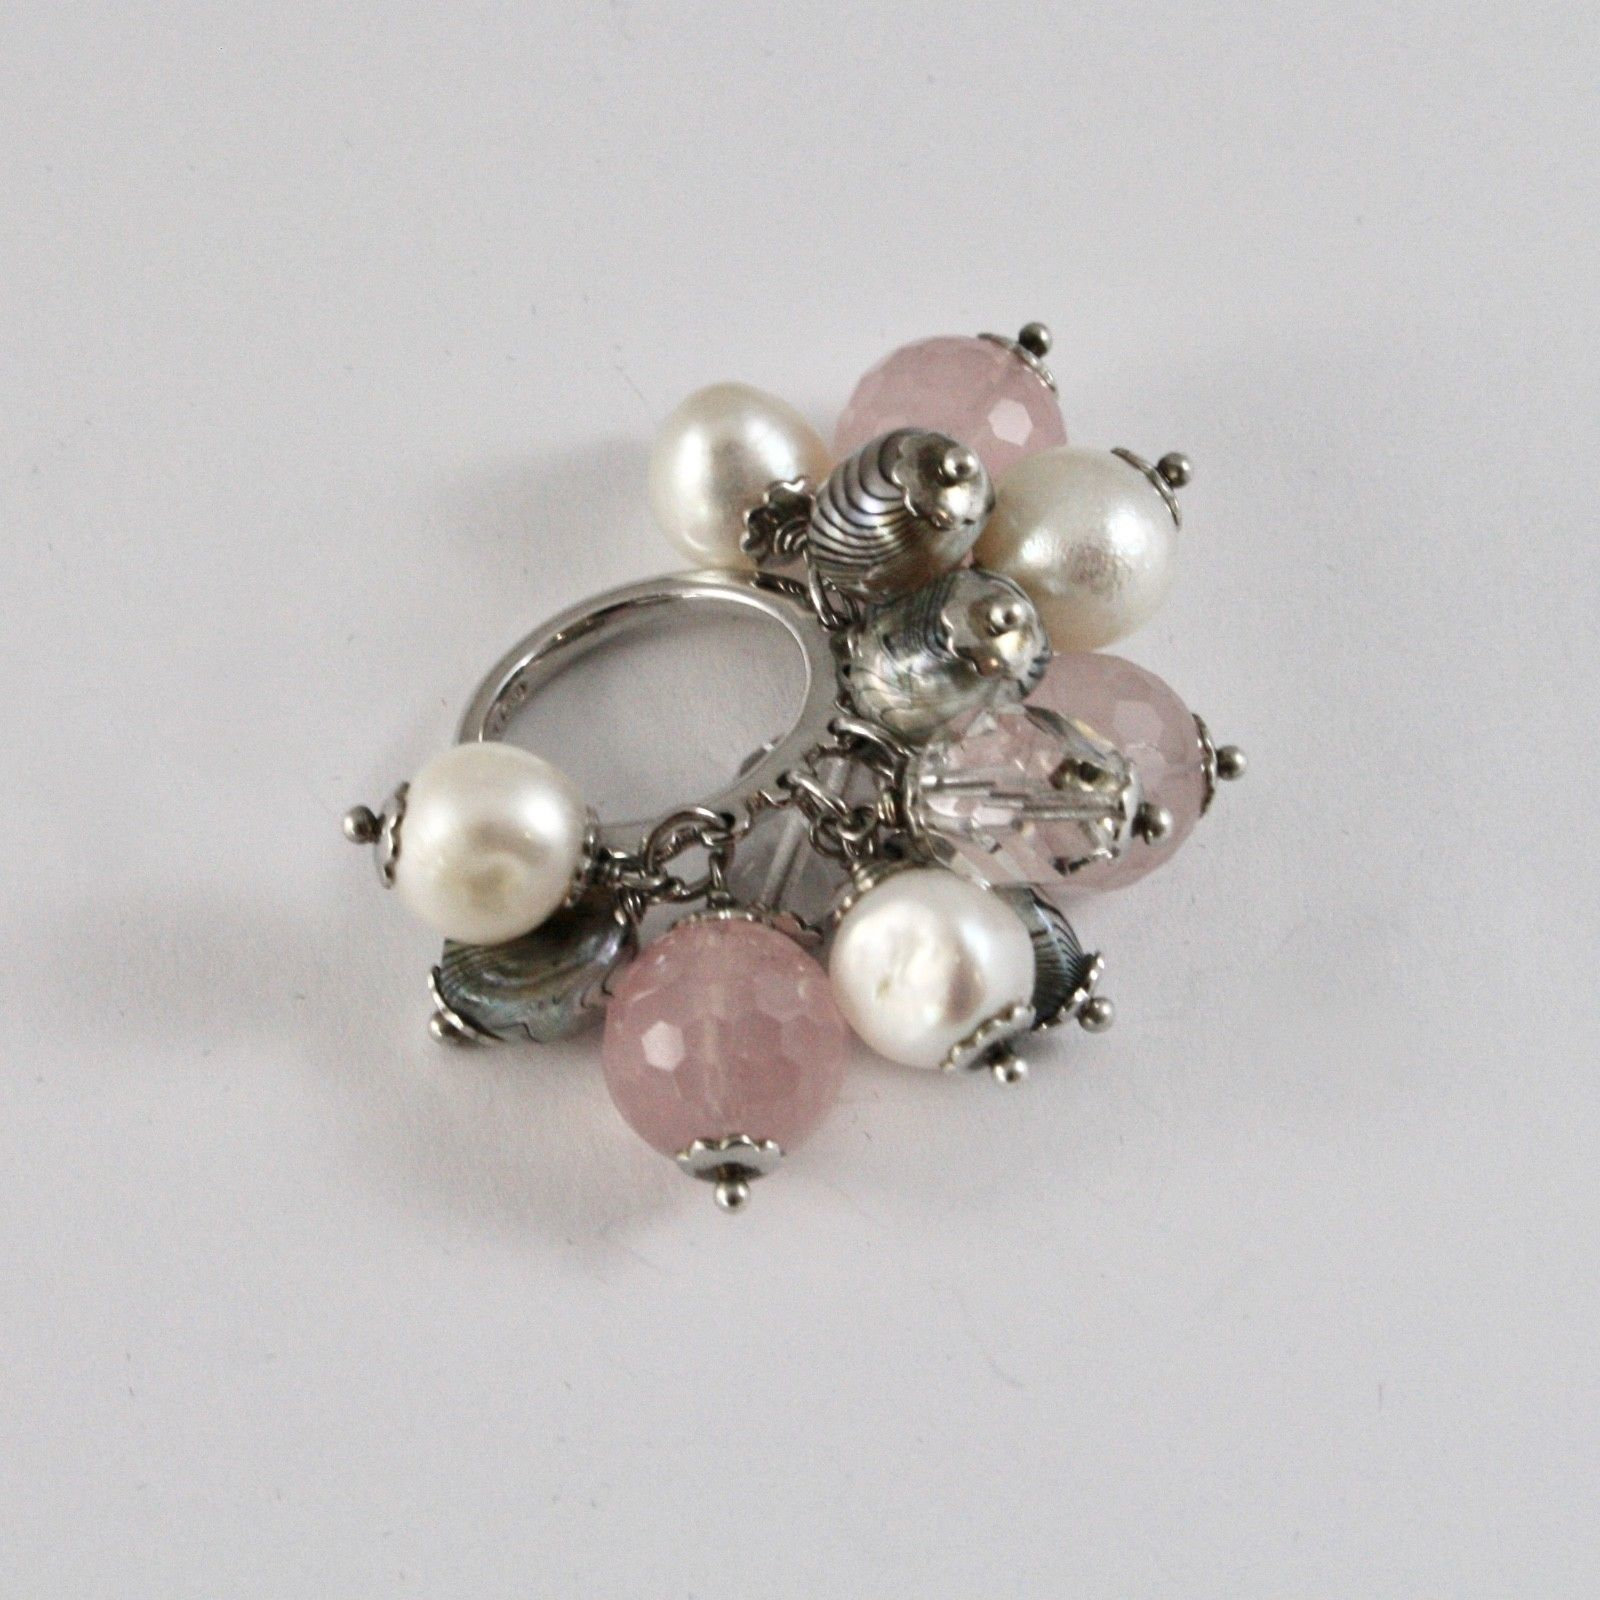 925 SILVER RING CLUSTER MUNITIONS WITH PEARLS BAROQUE STYLE QUARTZ ROSE AND